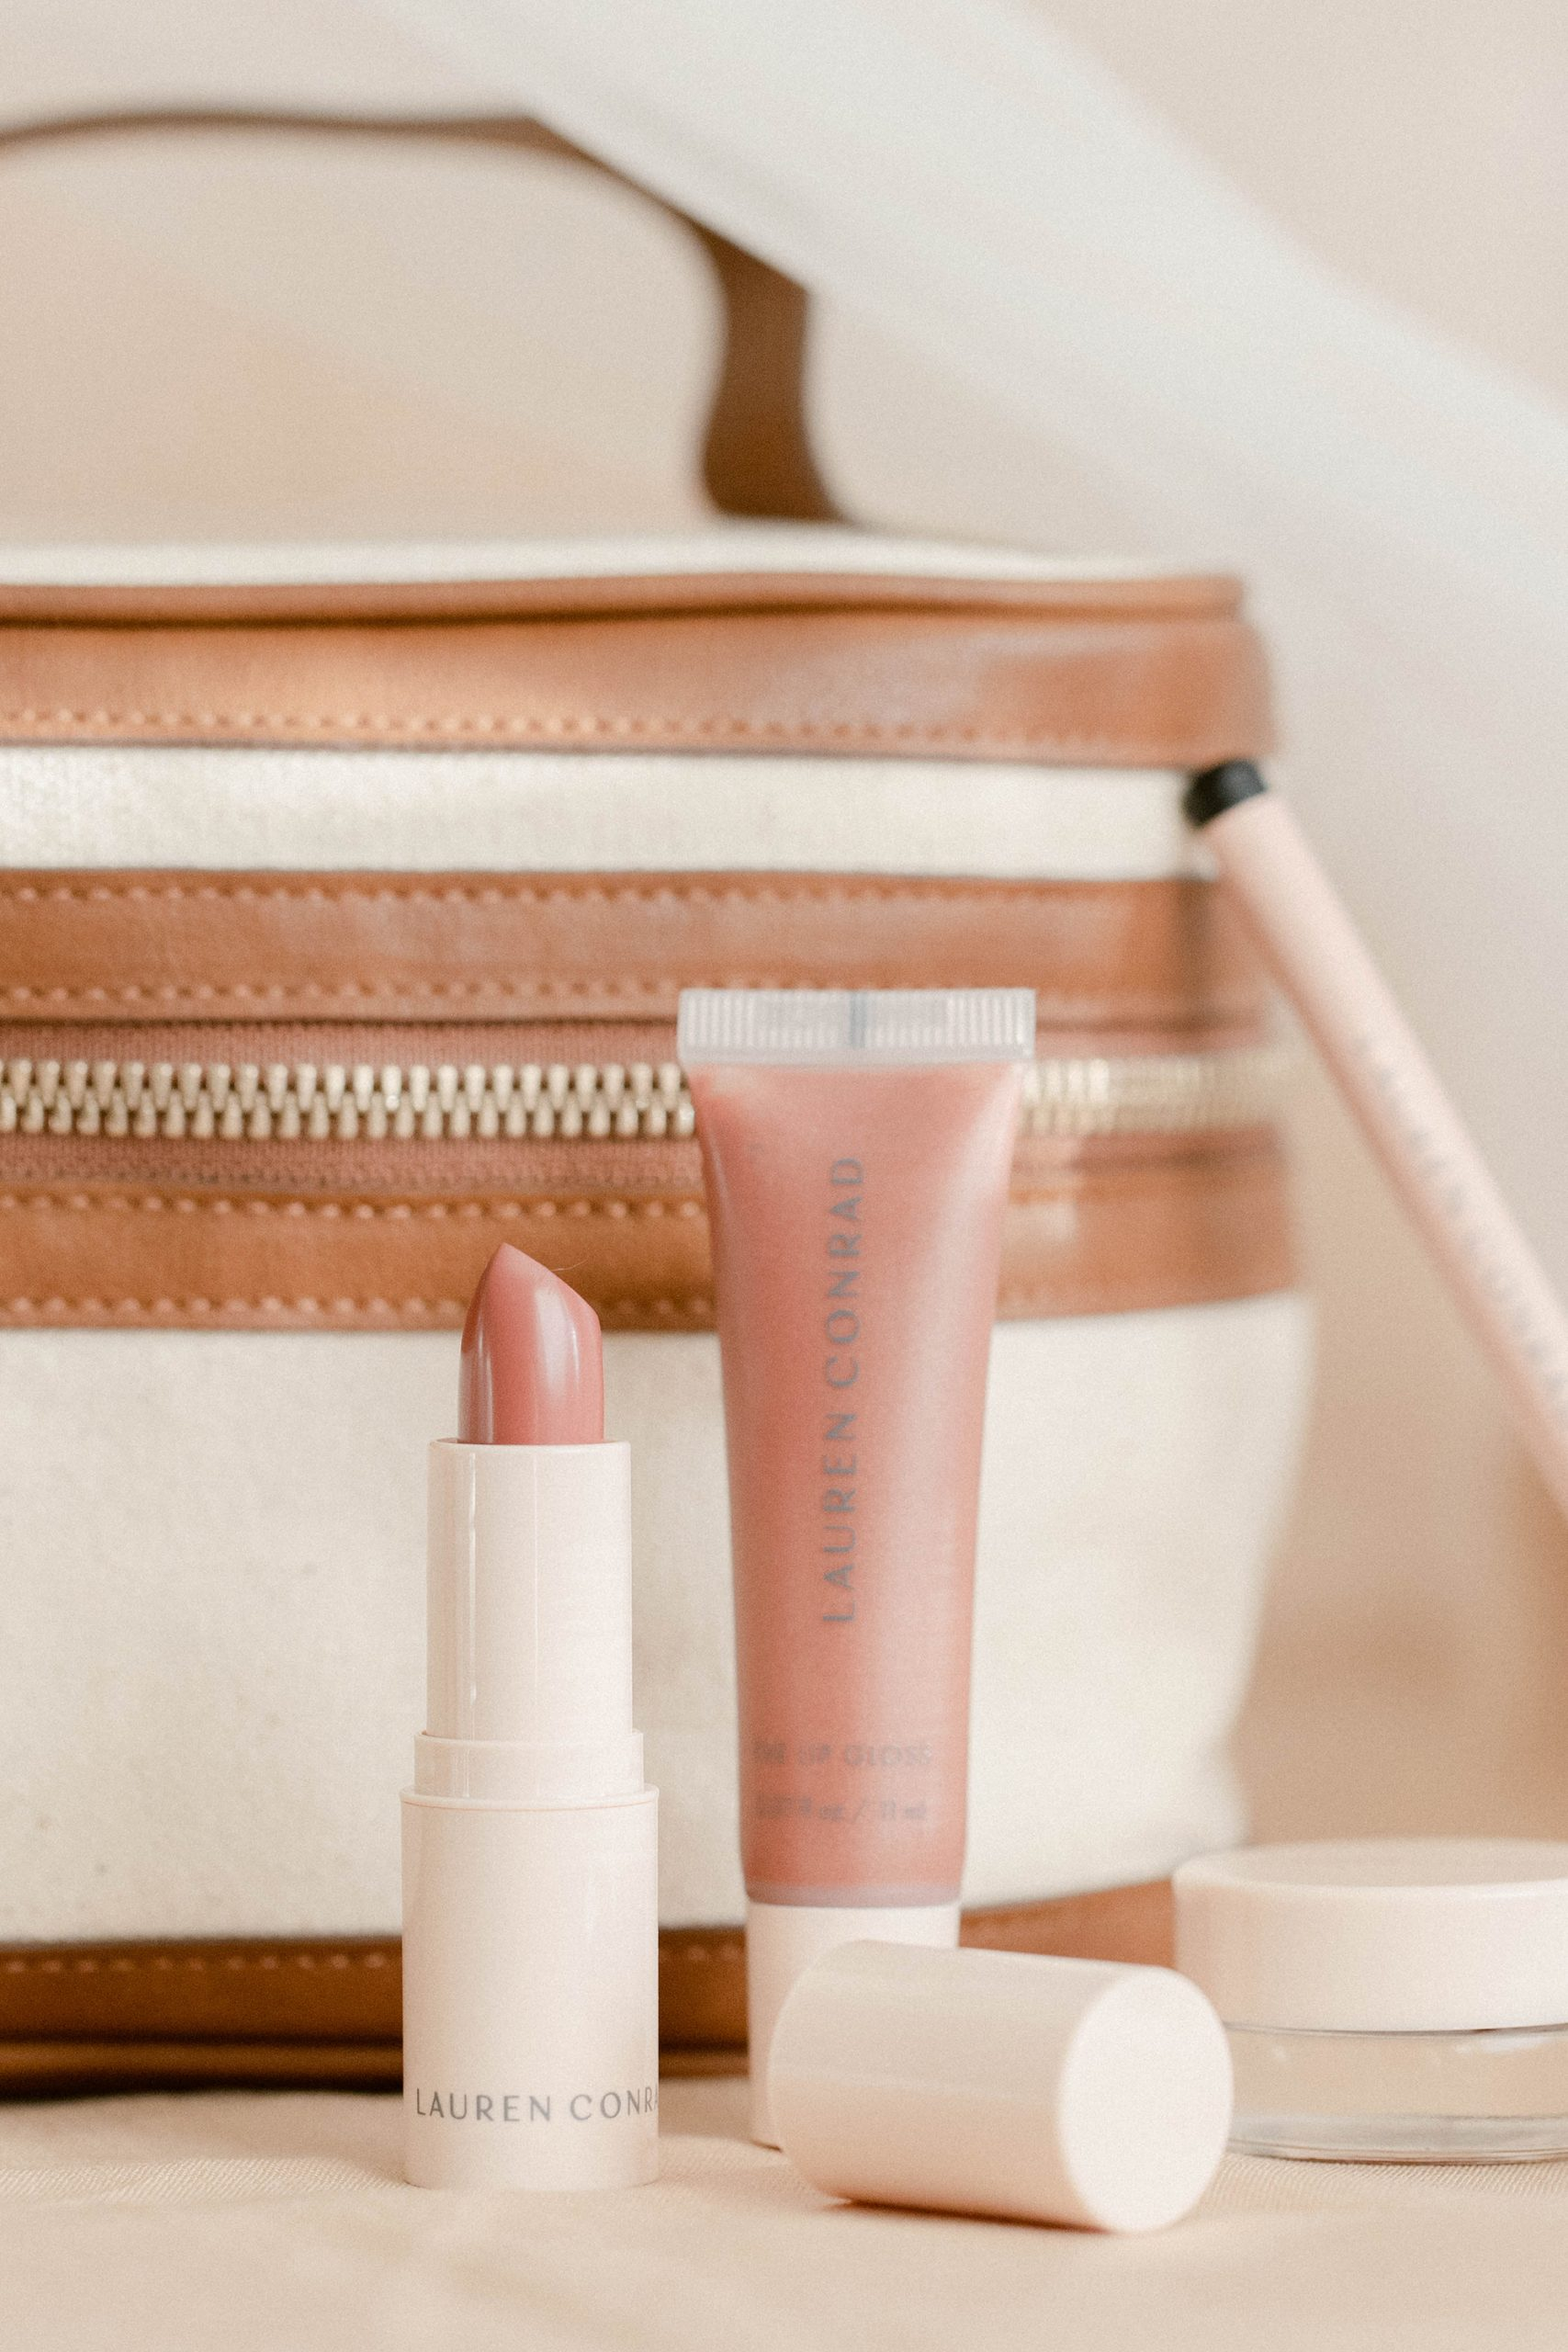 How to Recycle Expired Makeup